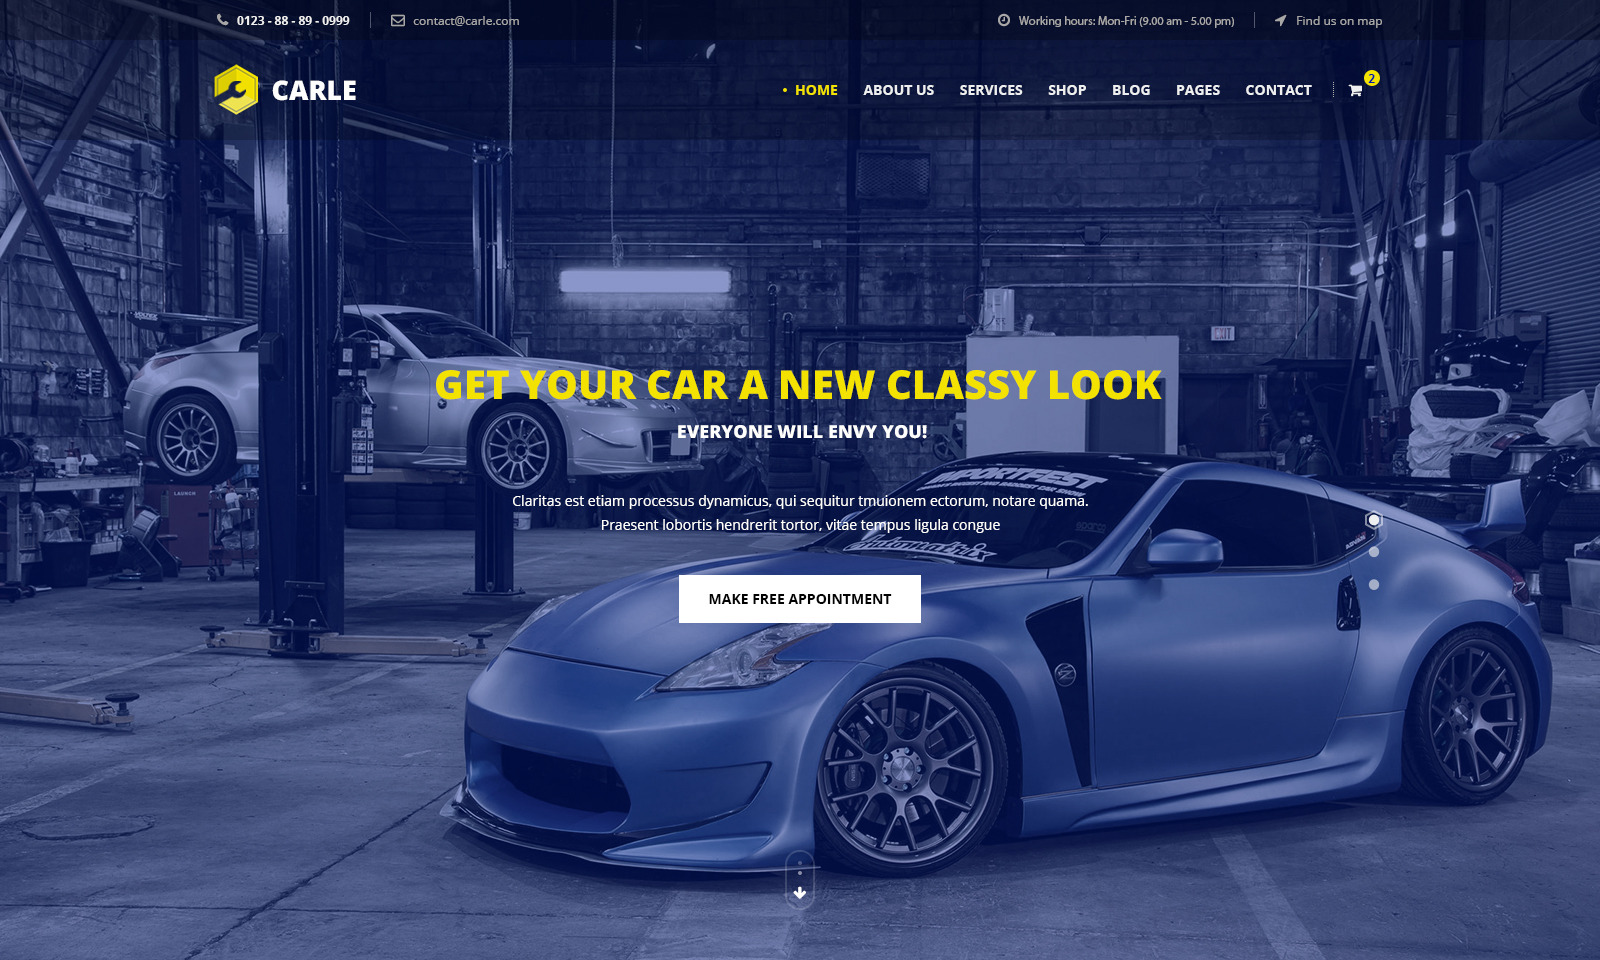 Carle Car Service And Shop PSD Template By NooThemePSD ThemeForest - Free find us map header